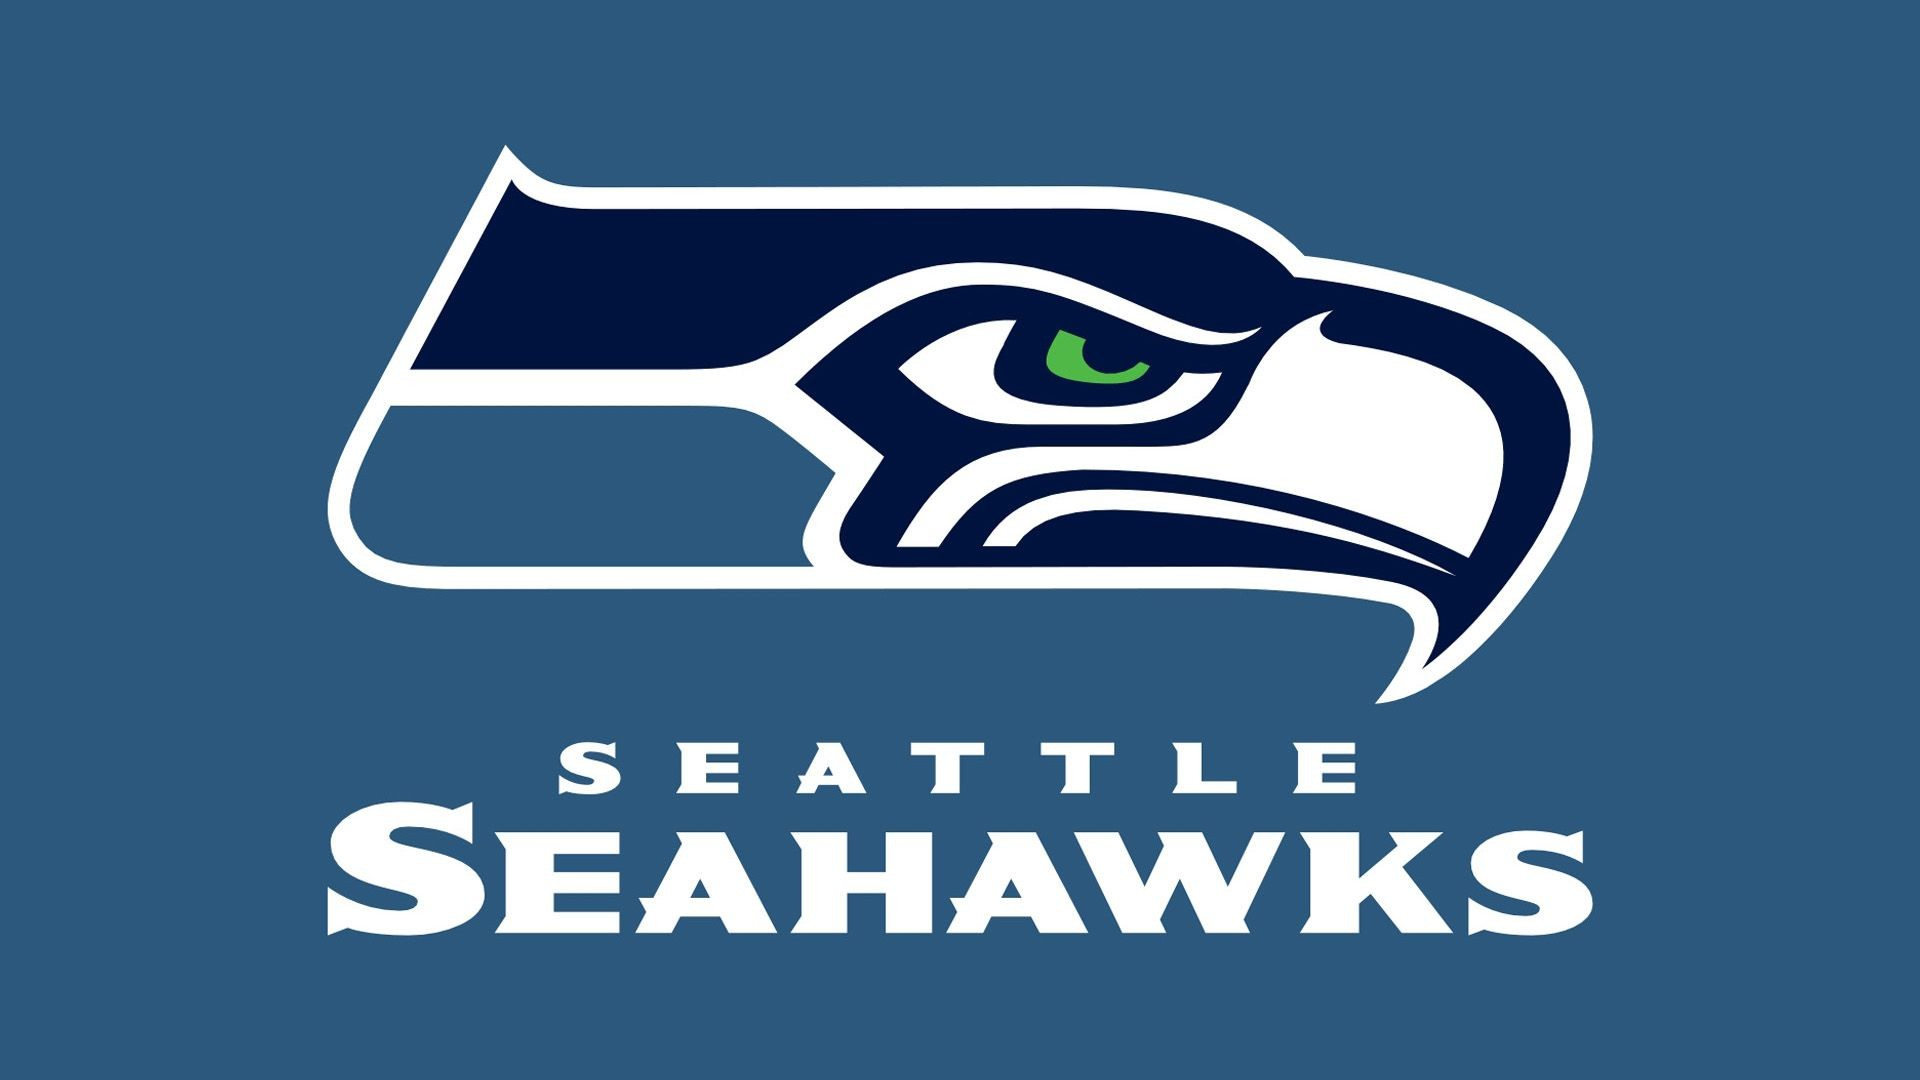 Seattle Seahawks Wallpaper Download Free Hd Wallpapers For